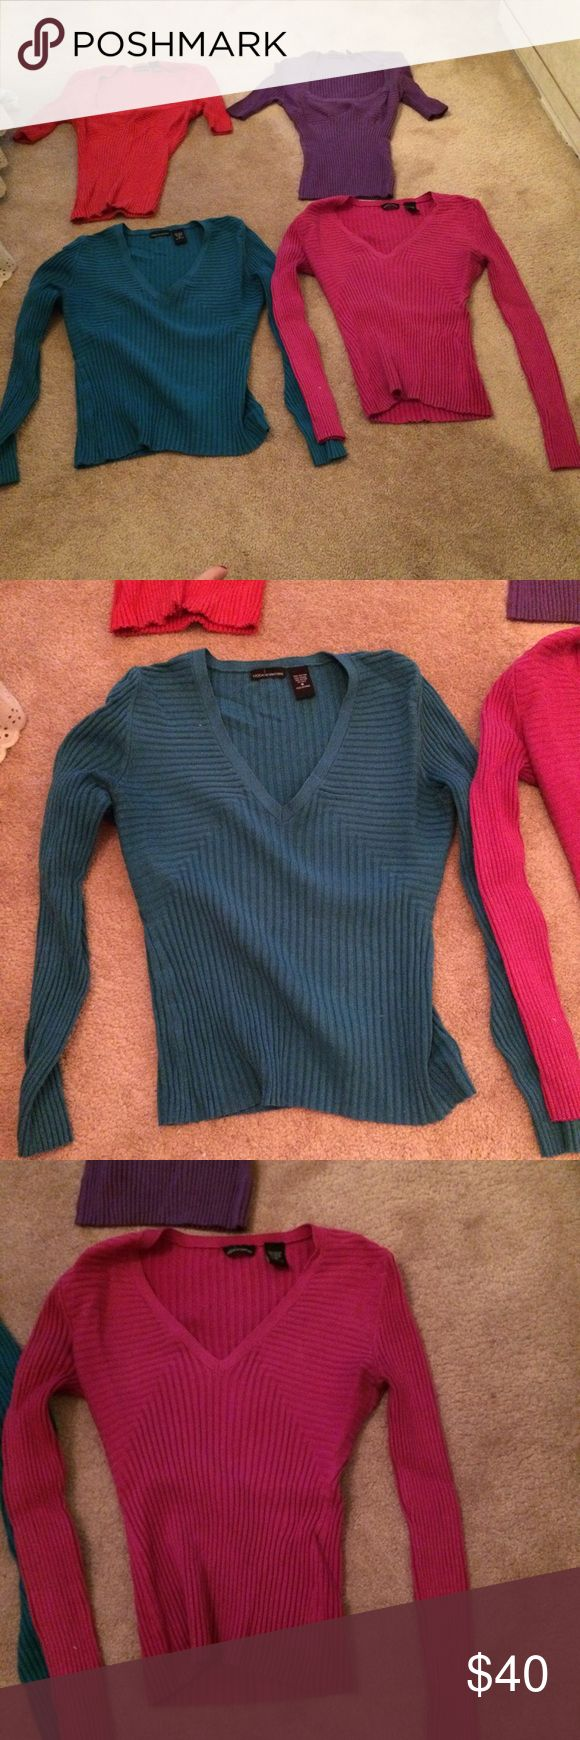 Final sale Four Victoria Secret Sweaters Four Victoria Secret Sweaters.  I am trying to down size these are all in good condition.  Feel free to make an offer.  They are green fuchsia red and purple .  Two long sleeve and two short sleeve.  Final sale 20 dollars .  I will throw in a free size medium barely used lace camisole also from Victoria Secret. Victoria's Secret Tops